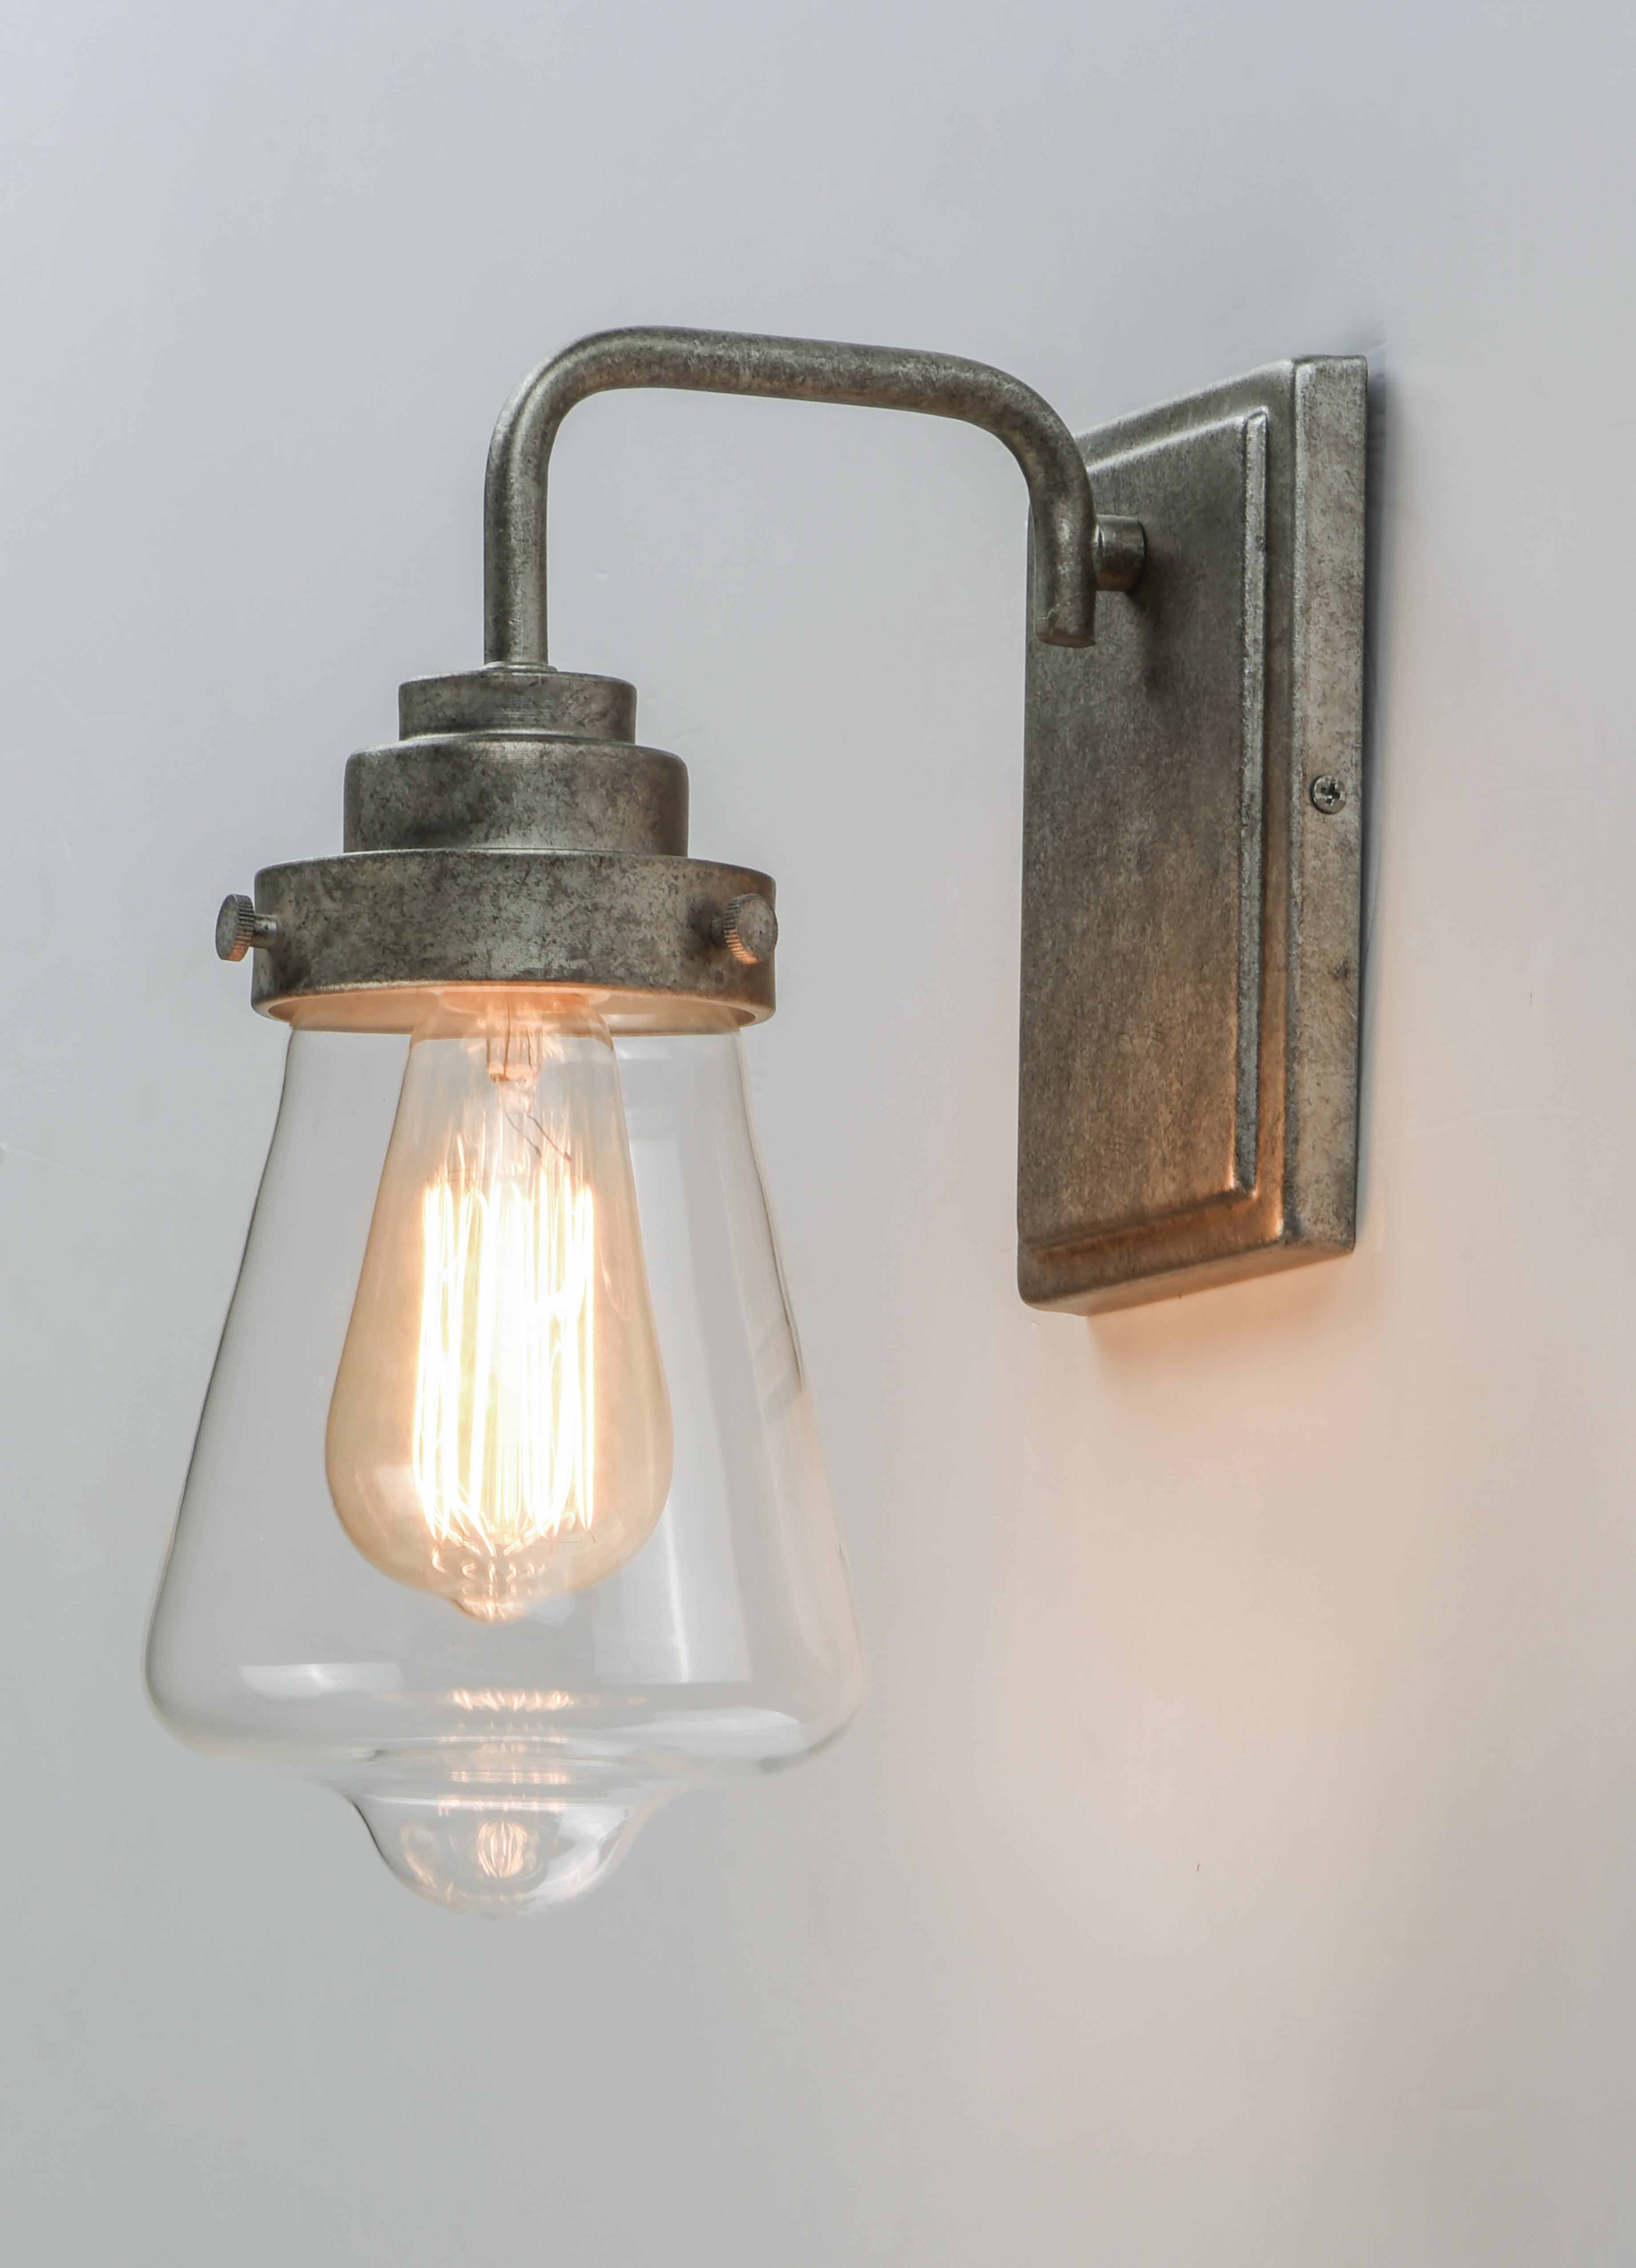 Cape Cod 1 Light Wall Sconce